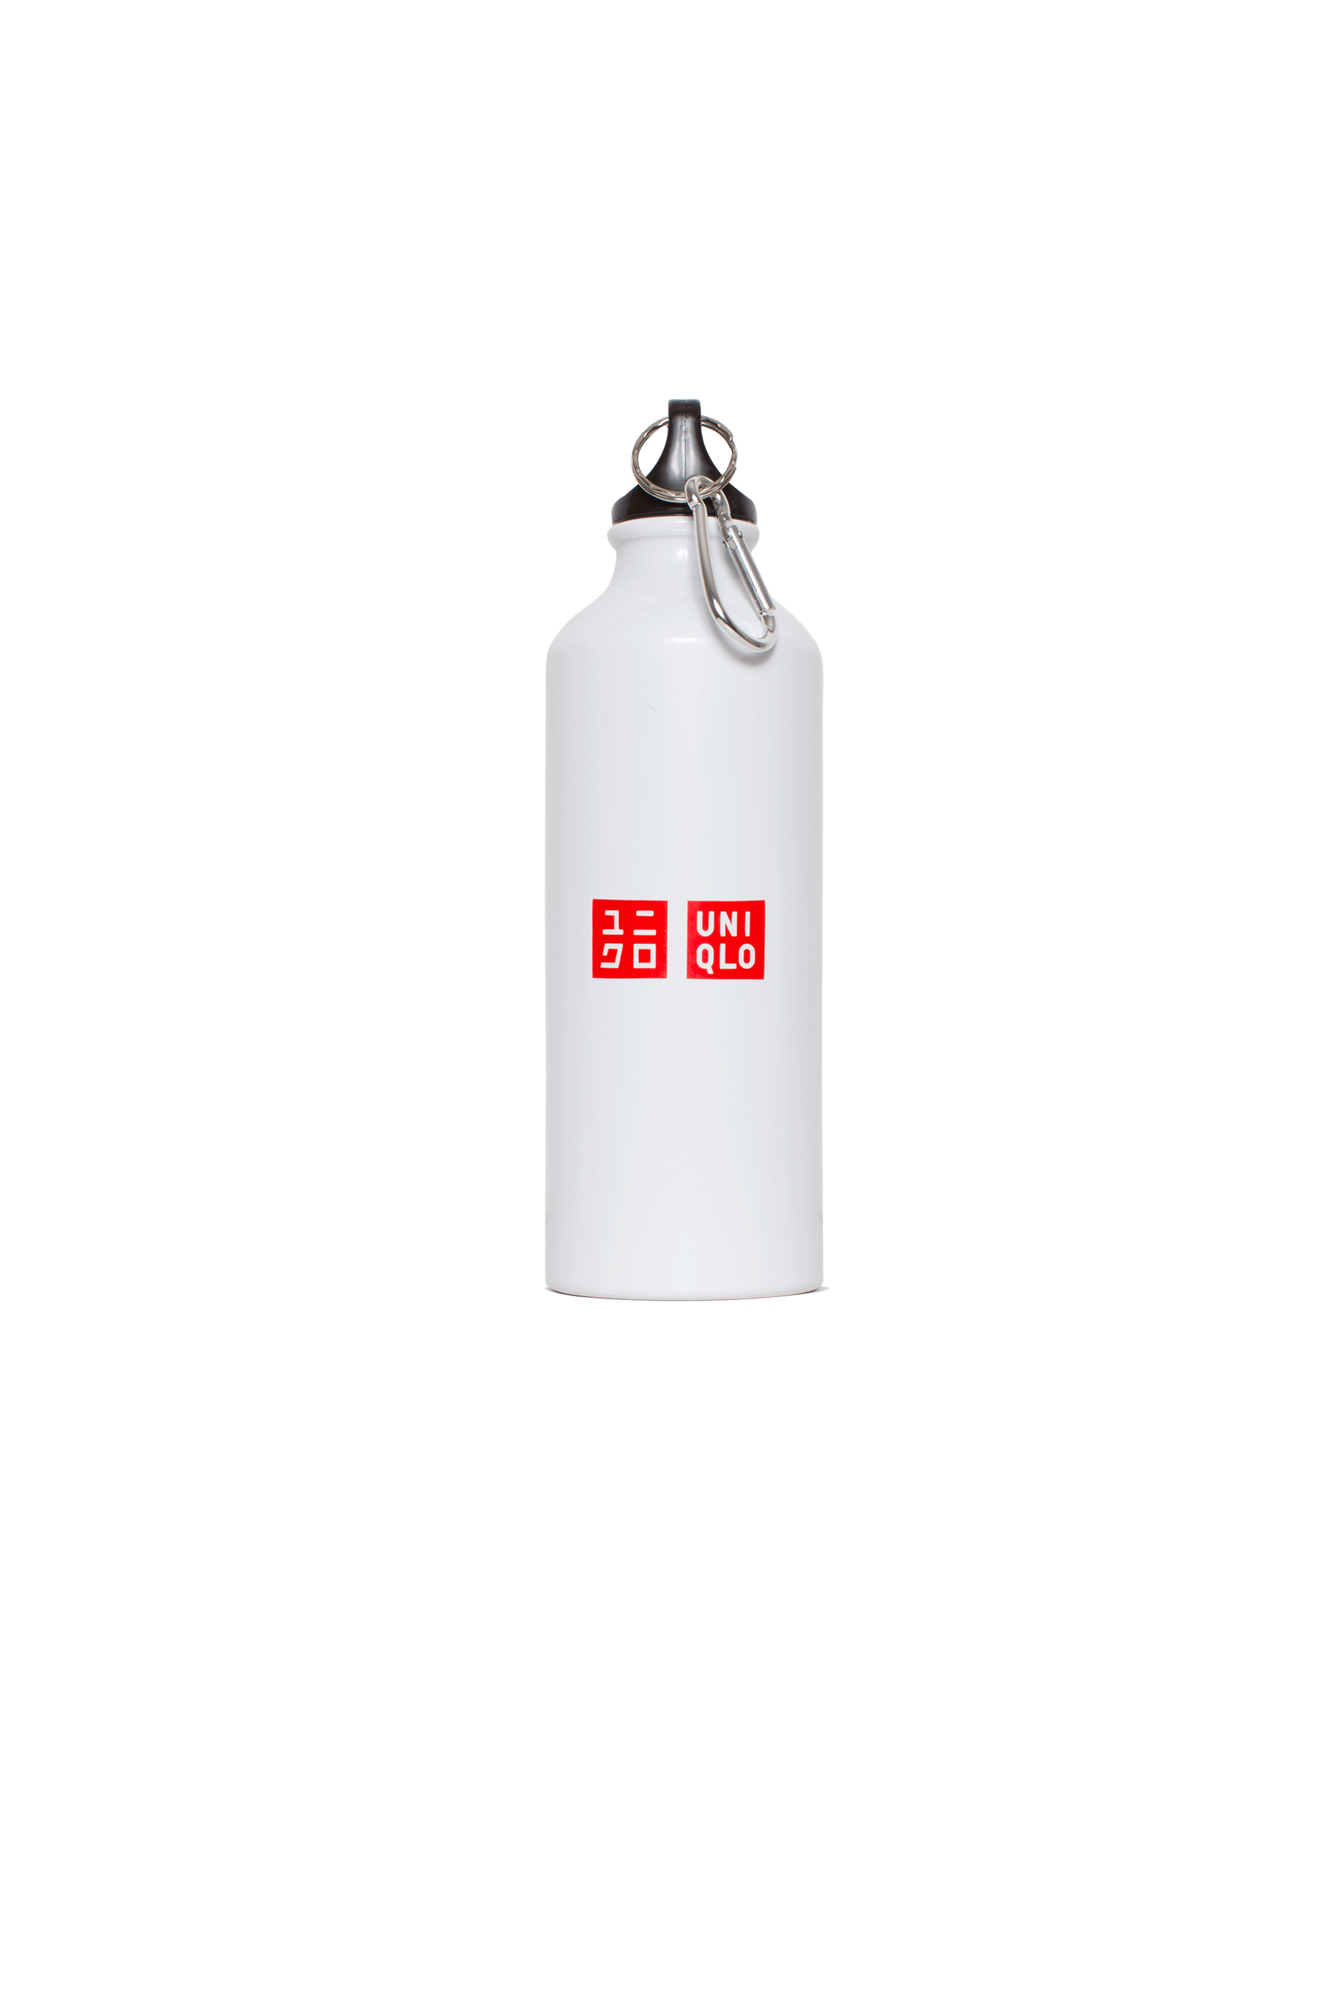 Uniqlo Varie Reusable Water Bottle Bianco WATERGOLD#000#WHT#OS - One Block Down